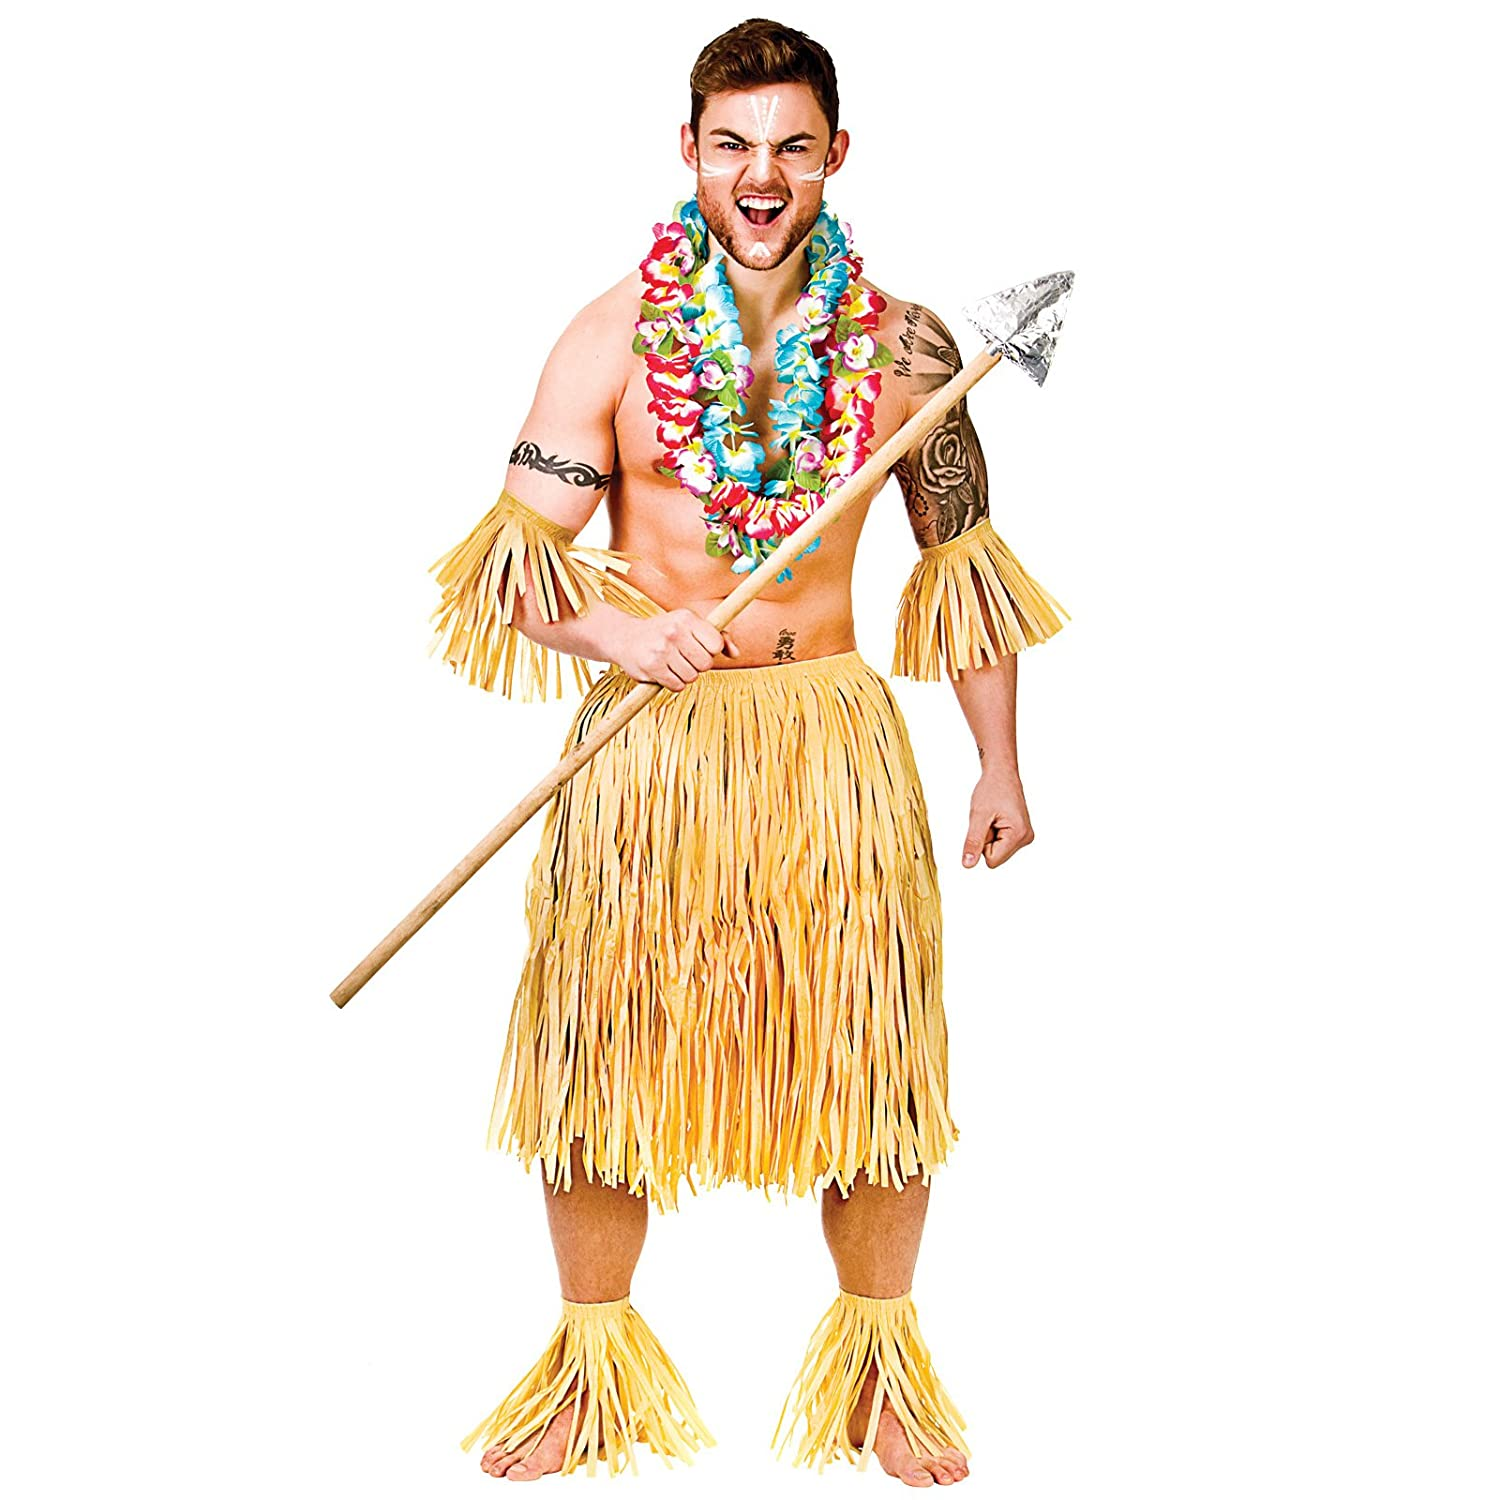 Hawaiian Party Guy/Zulu Warrior 5 Piece Raffia Set - Adult Costume Amazon.co.uk Toys u0026 Games  sc 1 st  Amazon UK & Hawaiian Party Guy/Zulu Warrior 5 Piece Raffia Set - Adult Costume ...